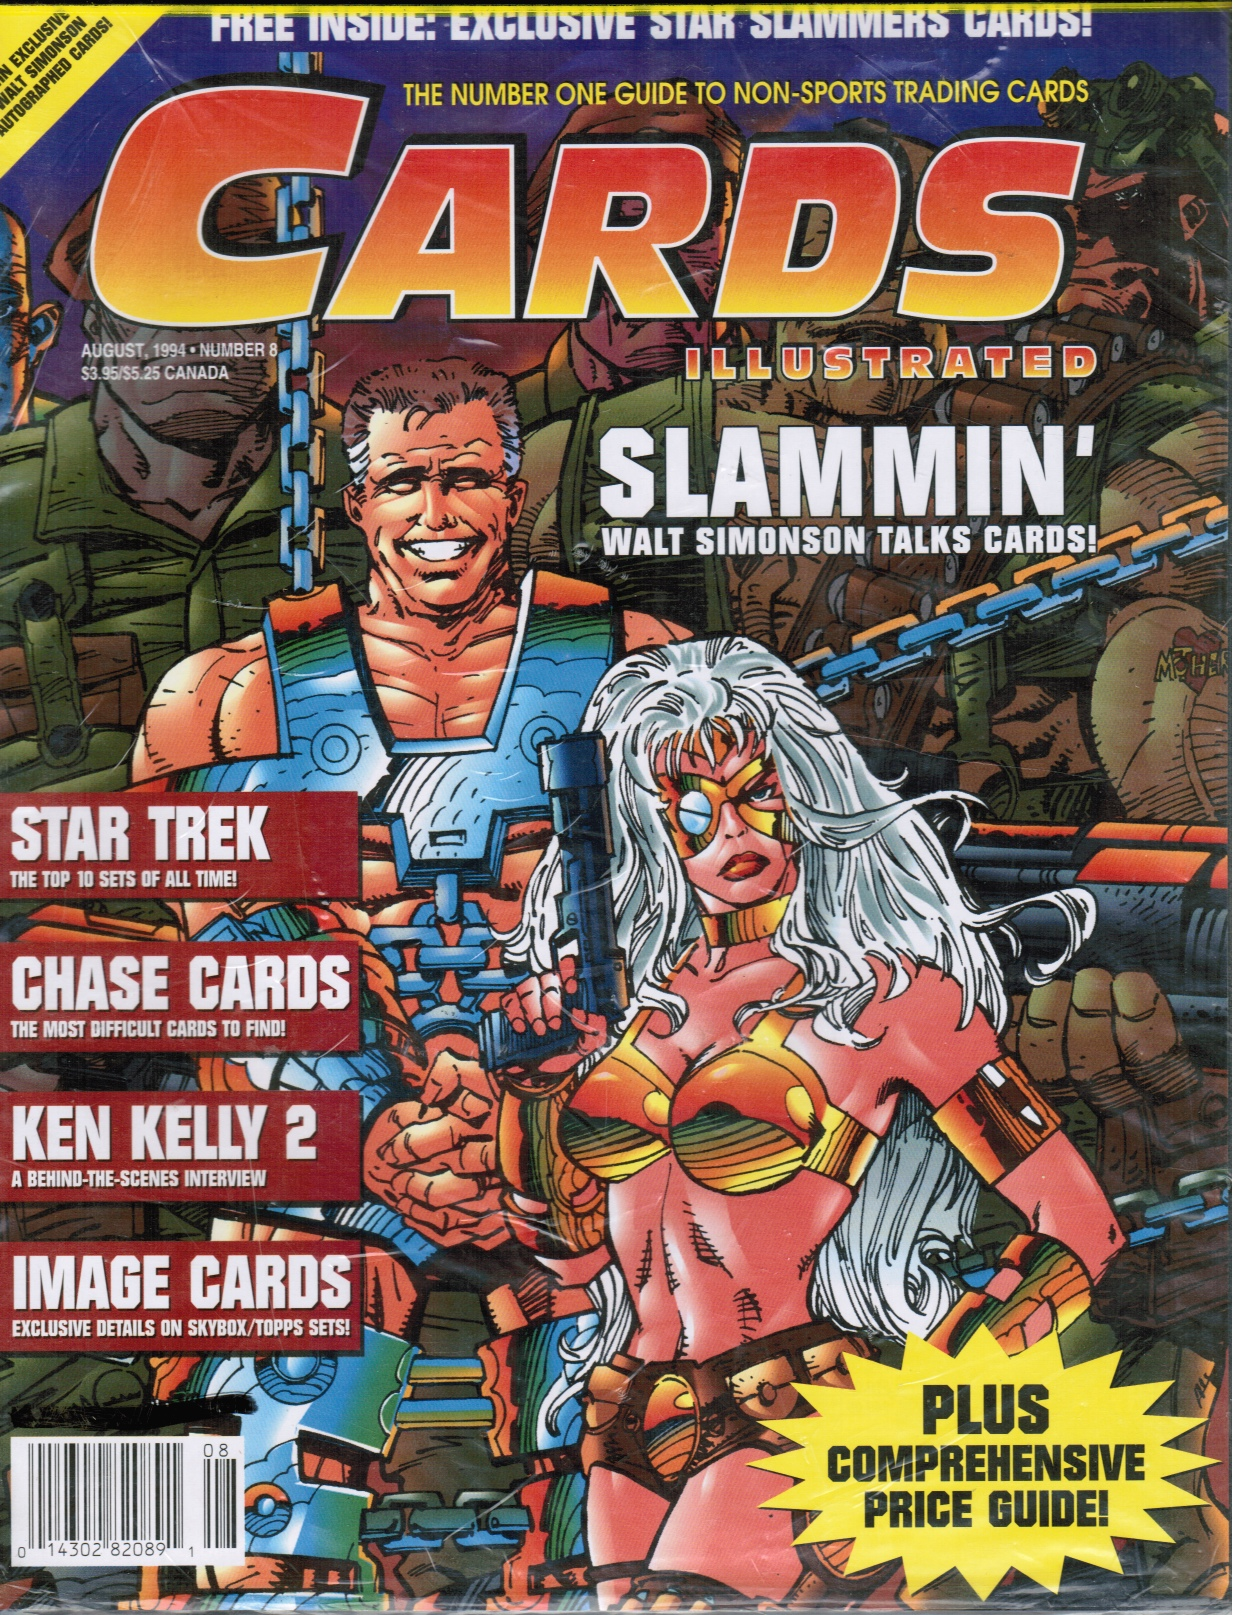 Image for Cards Illustrated No.8 Aug 1994 Slammin' Walt Simonson talks cards!